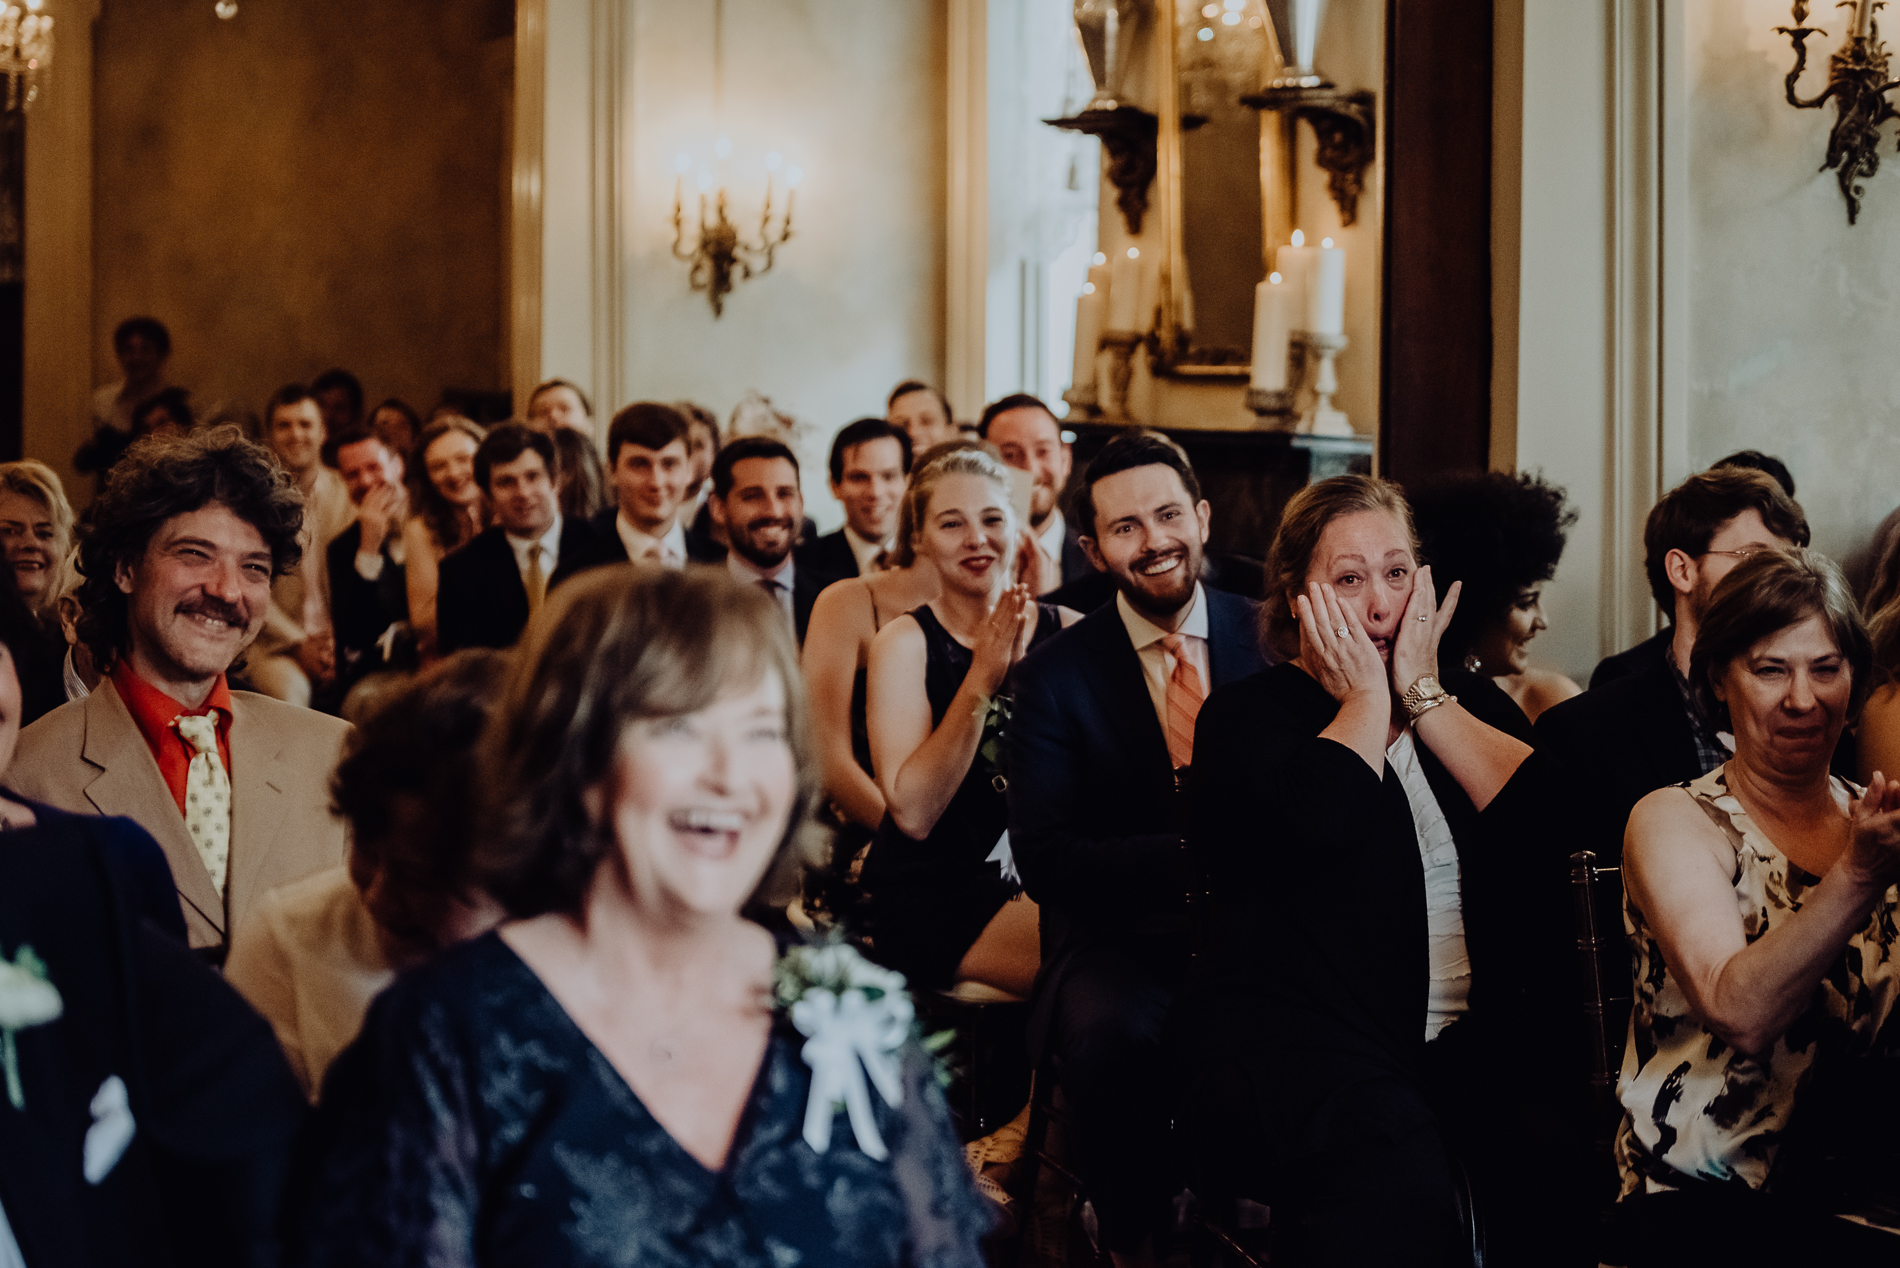 gabi and campbell east nashville wedding at riverwood mansion by wilde company-20.jpg